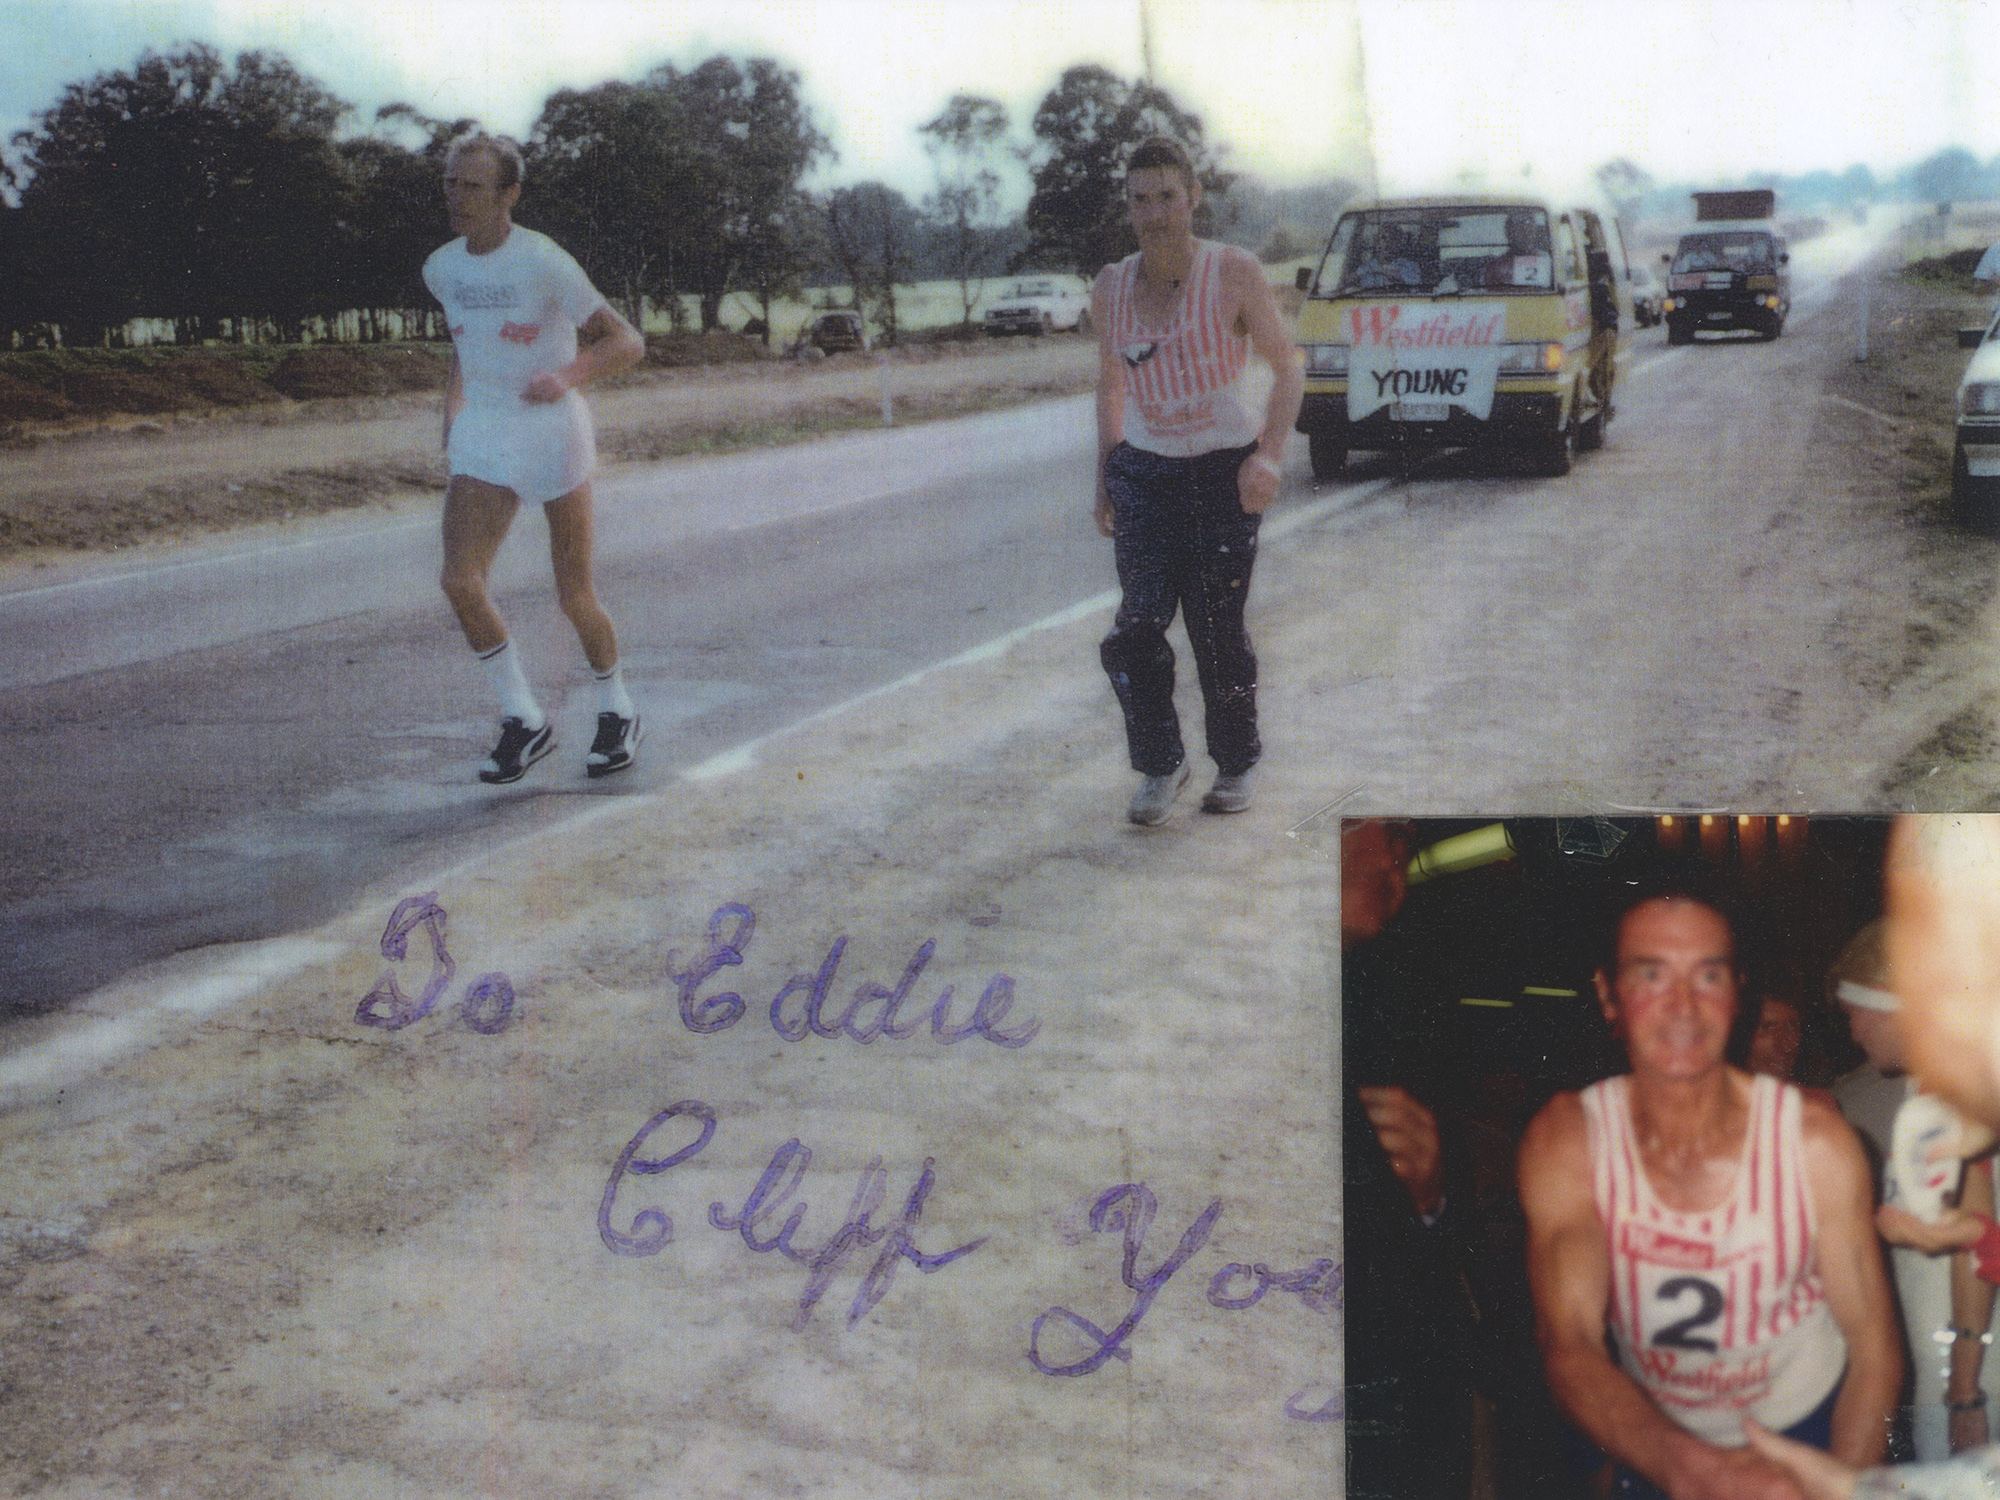 Eddie and Cliff Young